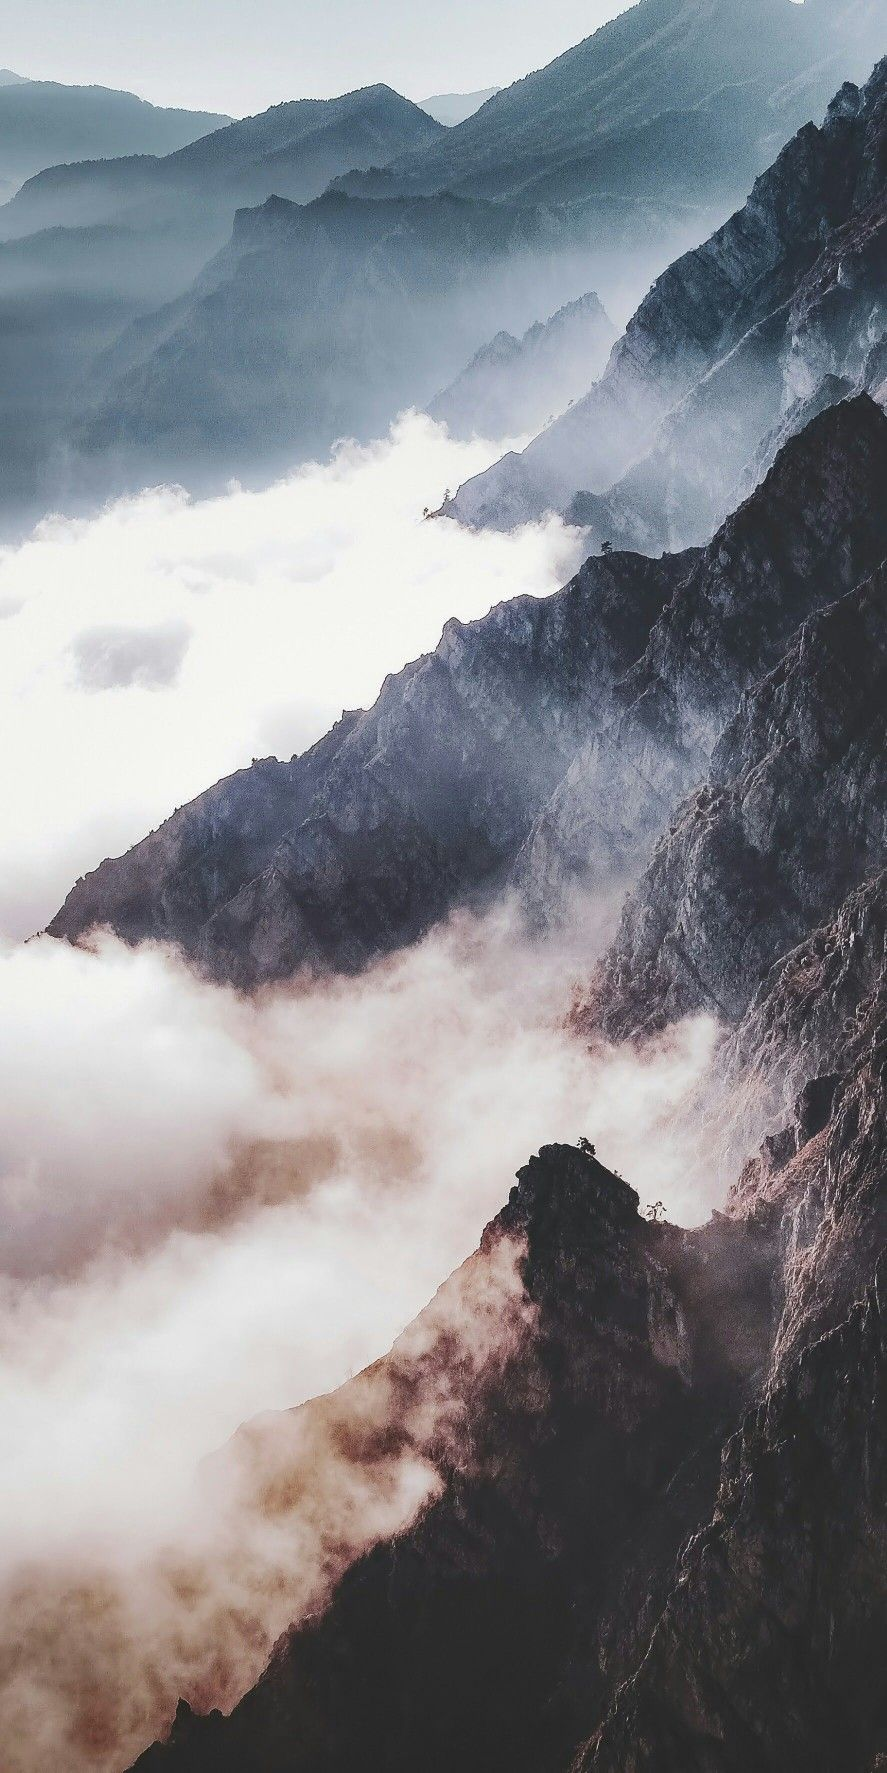 Mist covered mountain range // adventure photography travel photography #landscapepics